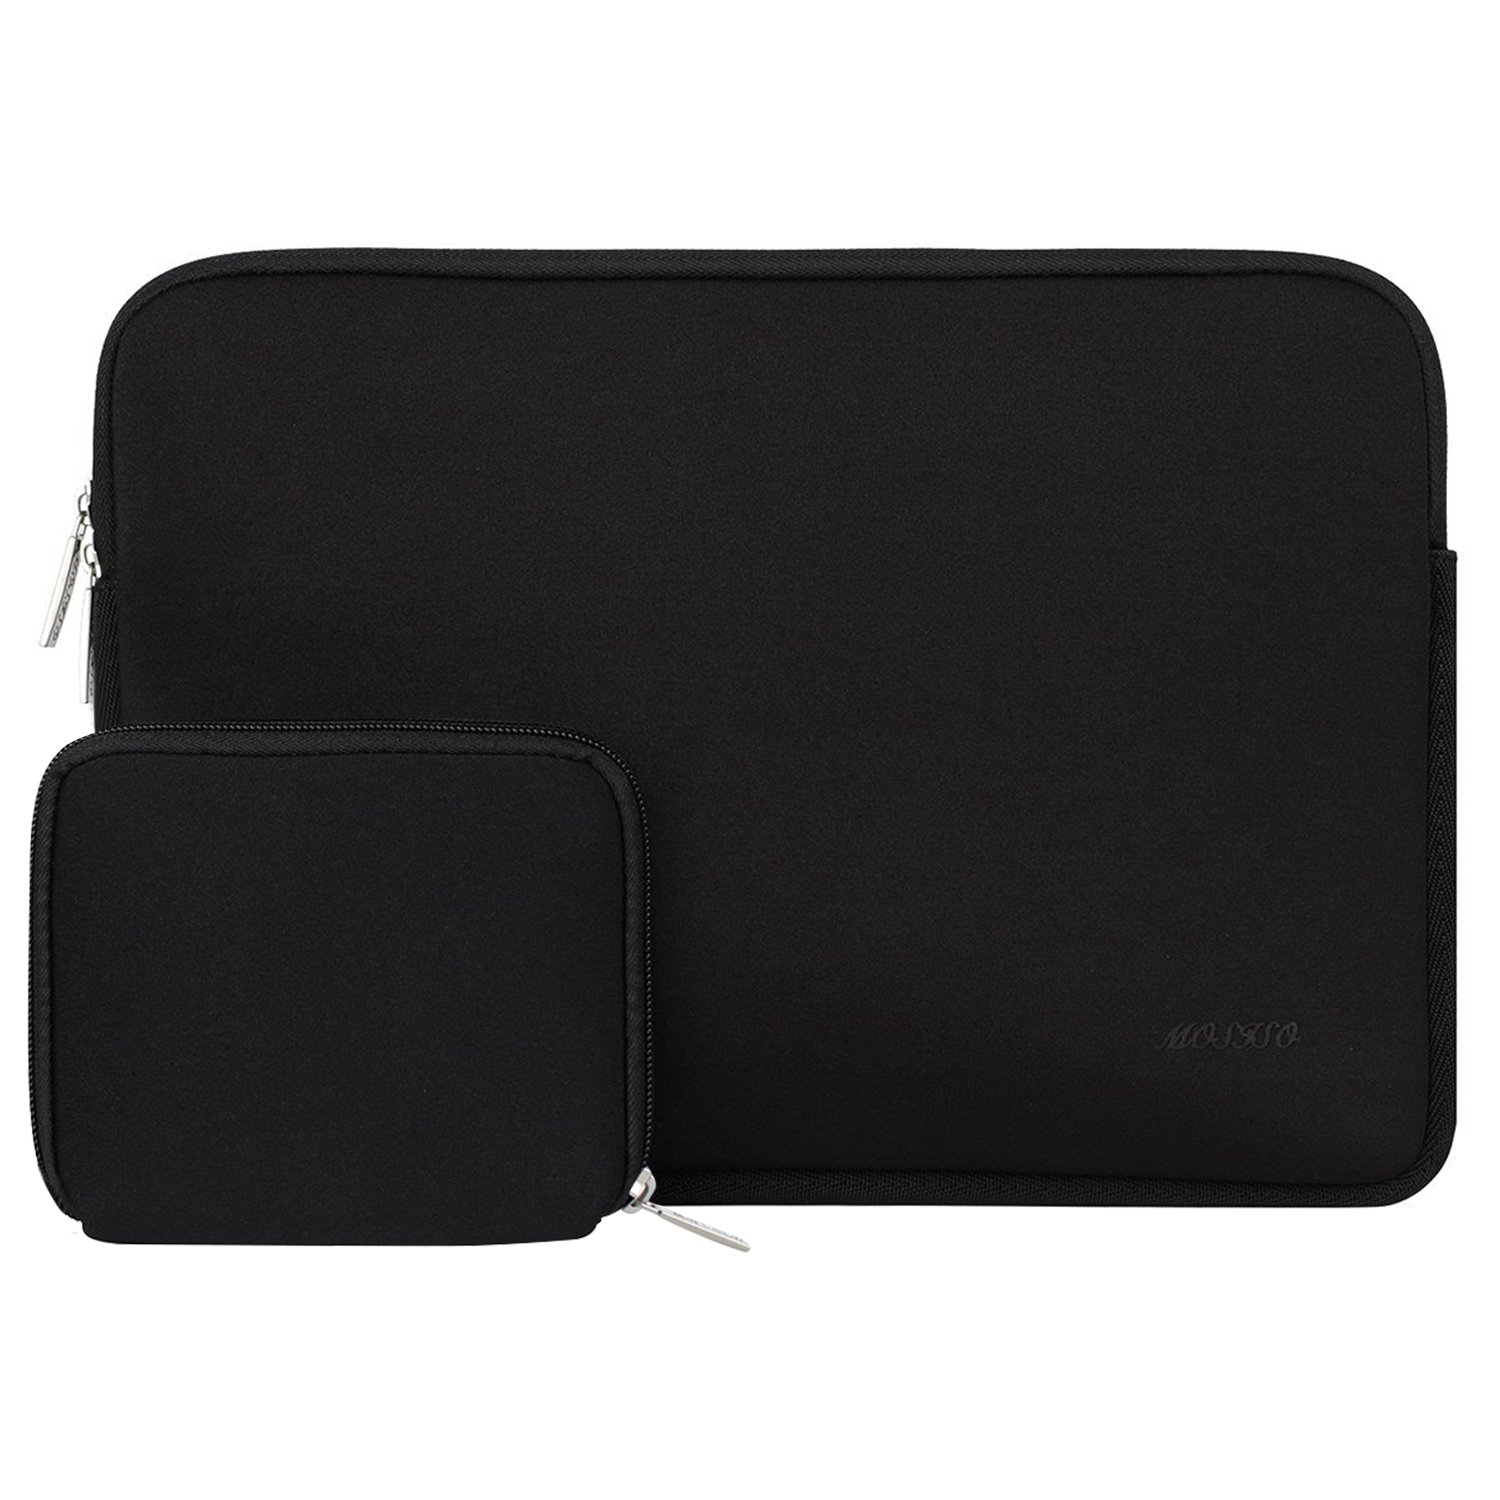 MOSISO Laptop Sleeve Compatible with 2019 MacBook Pro 16 inch Touch Bar A2141, 15-15.6 inch MacBook Pro Retina 2012-2015, Notebook, Water Repellent Neoprene Bag with Small Case, Black